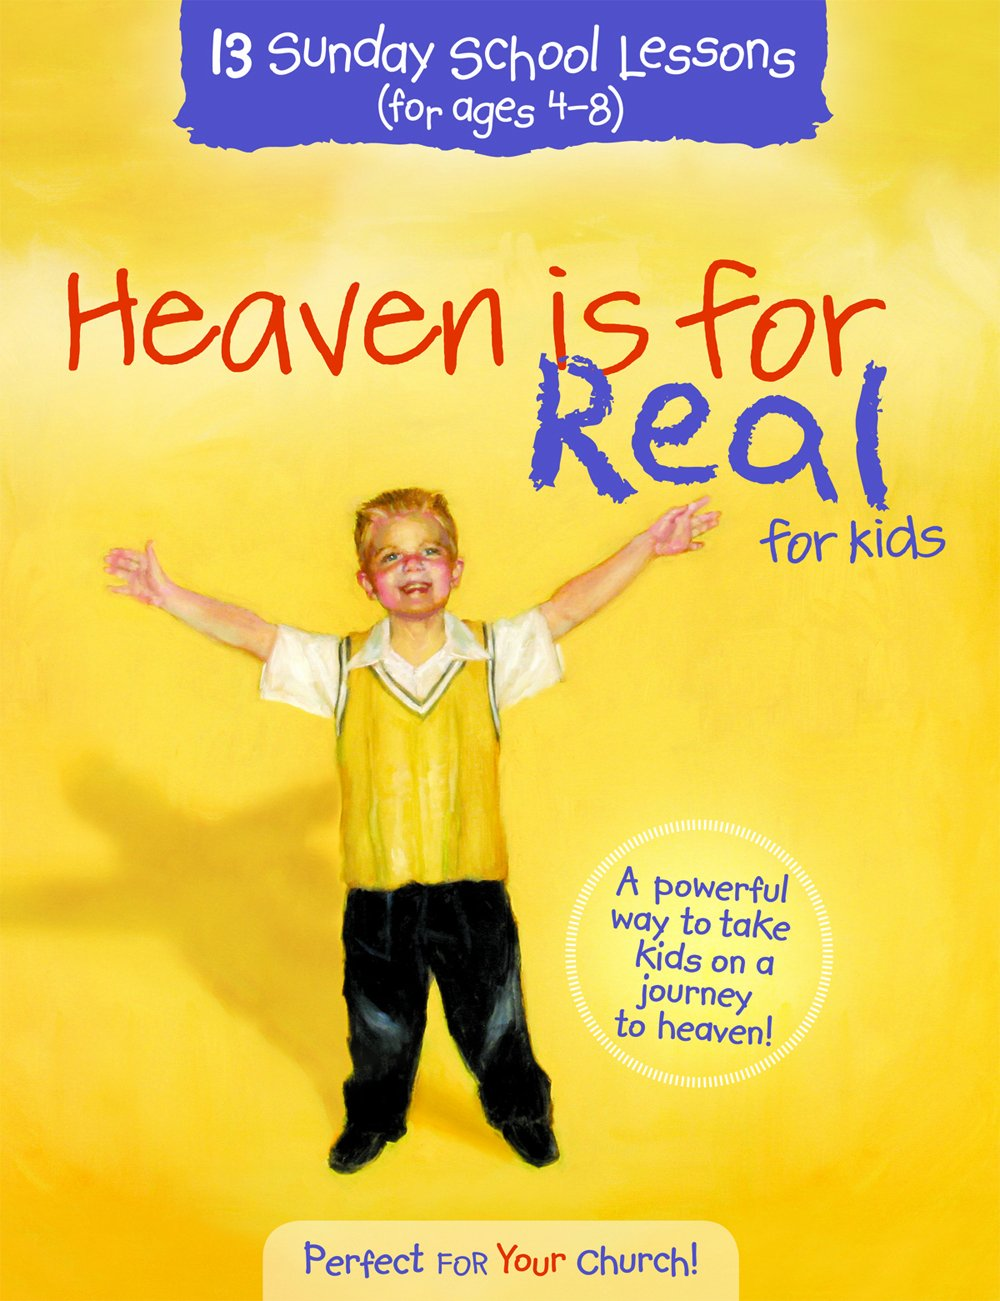 Heaven Is for Real for Kids: 13 Sunday School Lessons for Ages 4-8